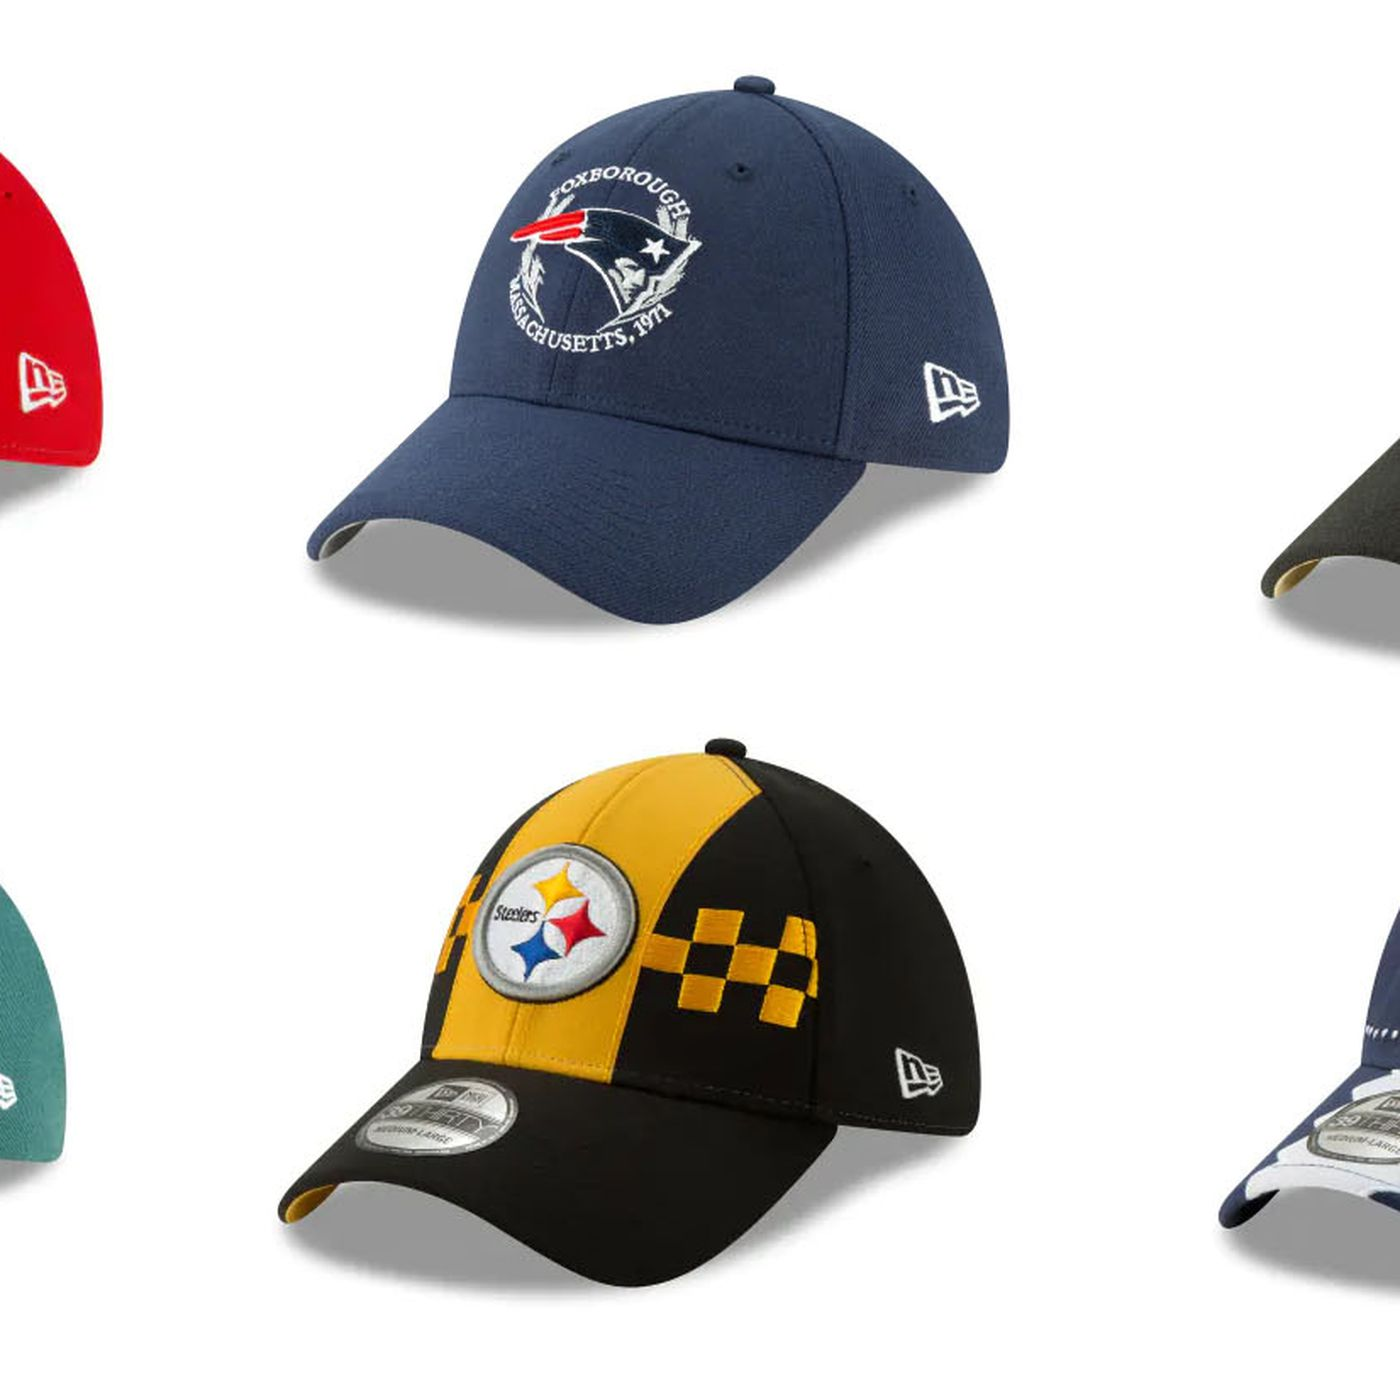 d19e8f4c Complete NFL Draft Grades for all 31* hats - SBNation.com